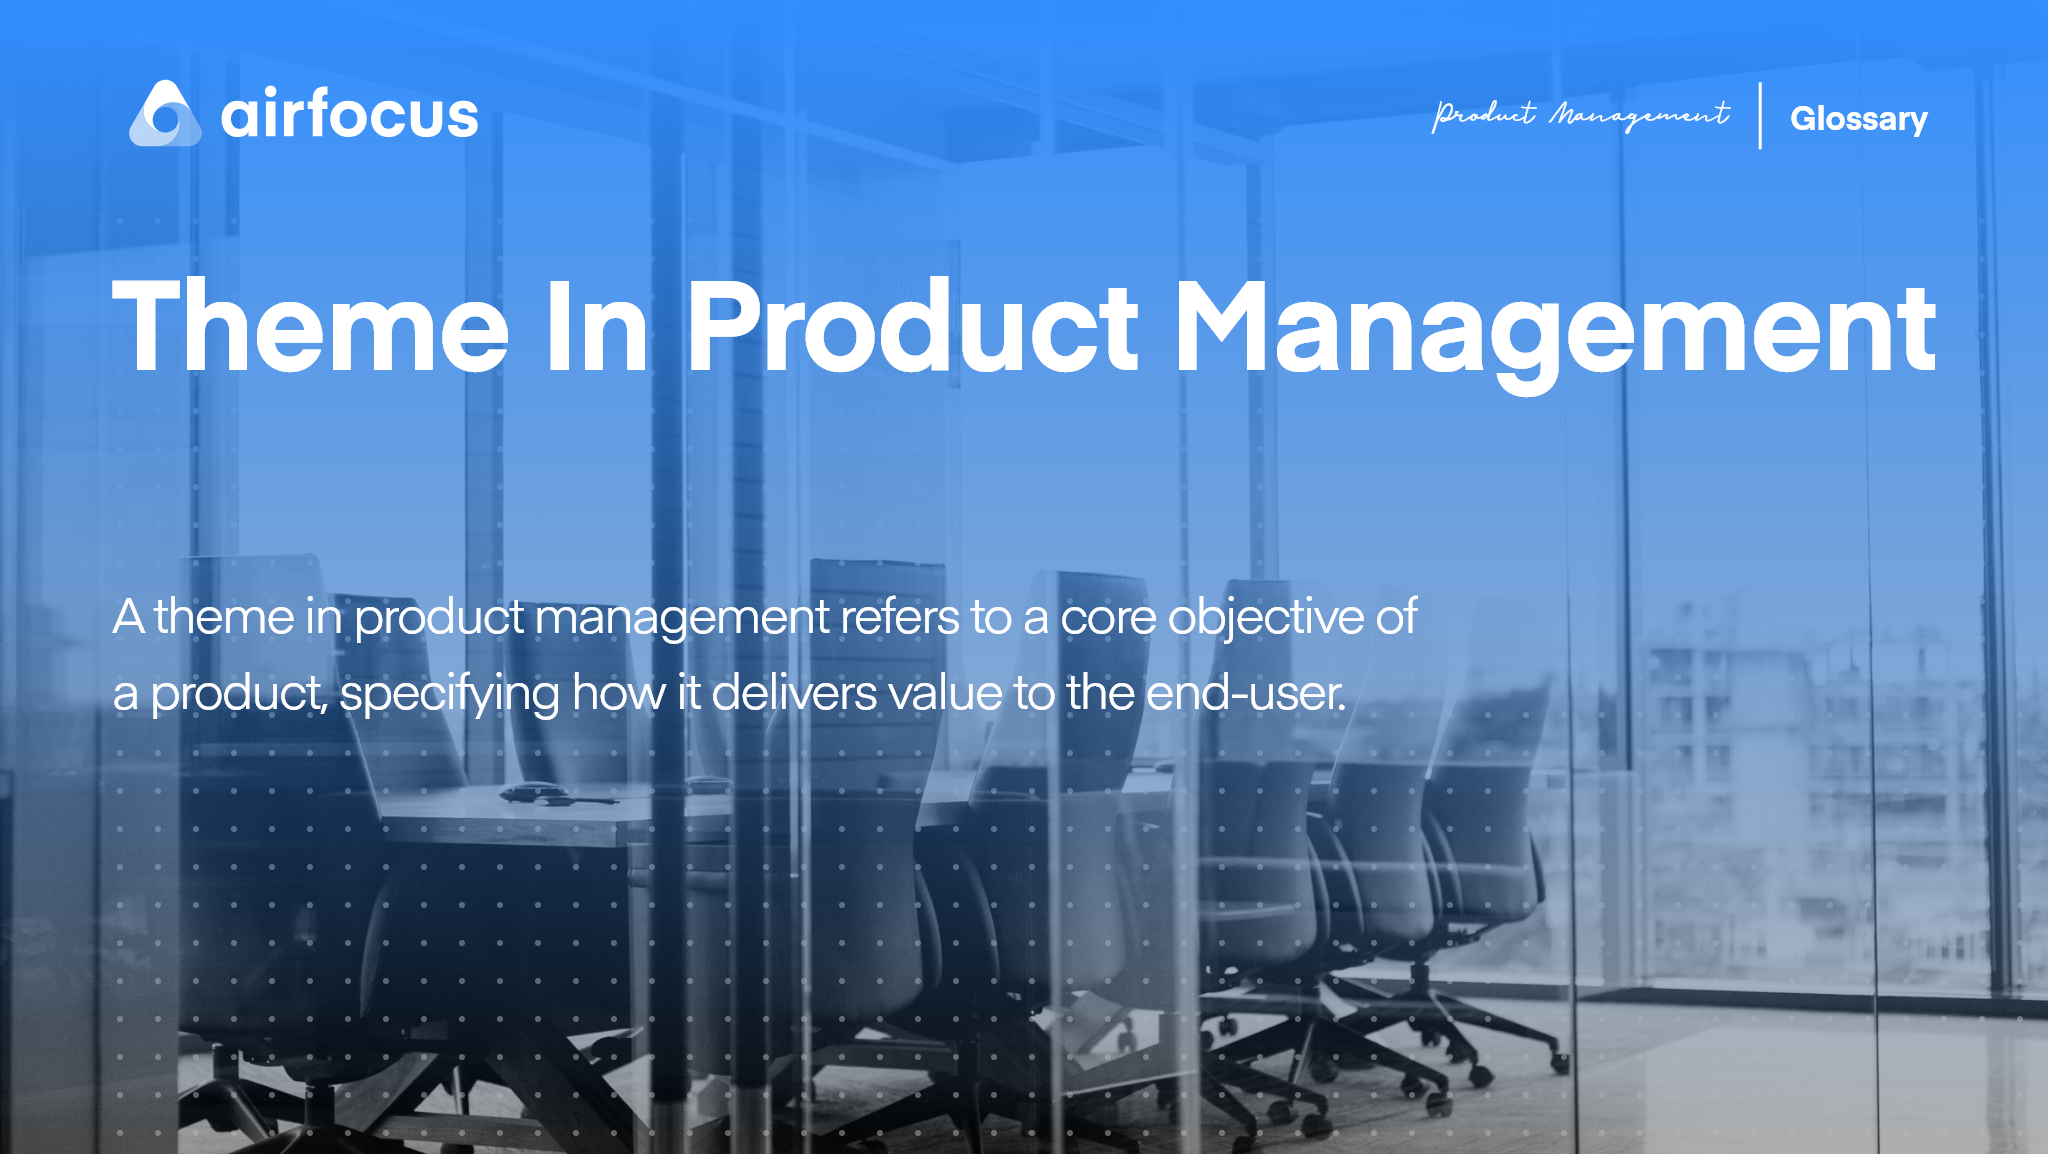 What Is a Theme in Product Management